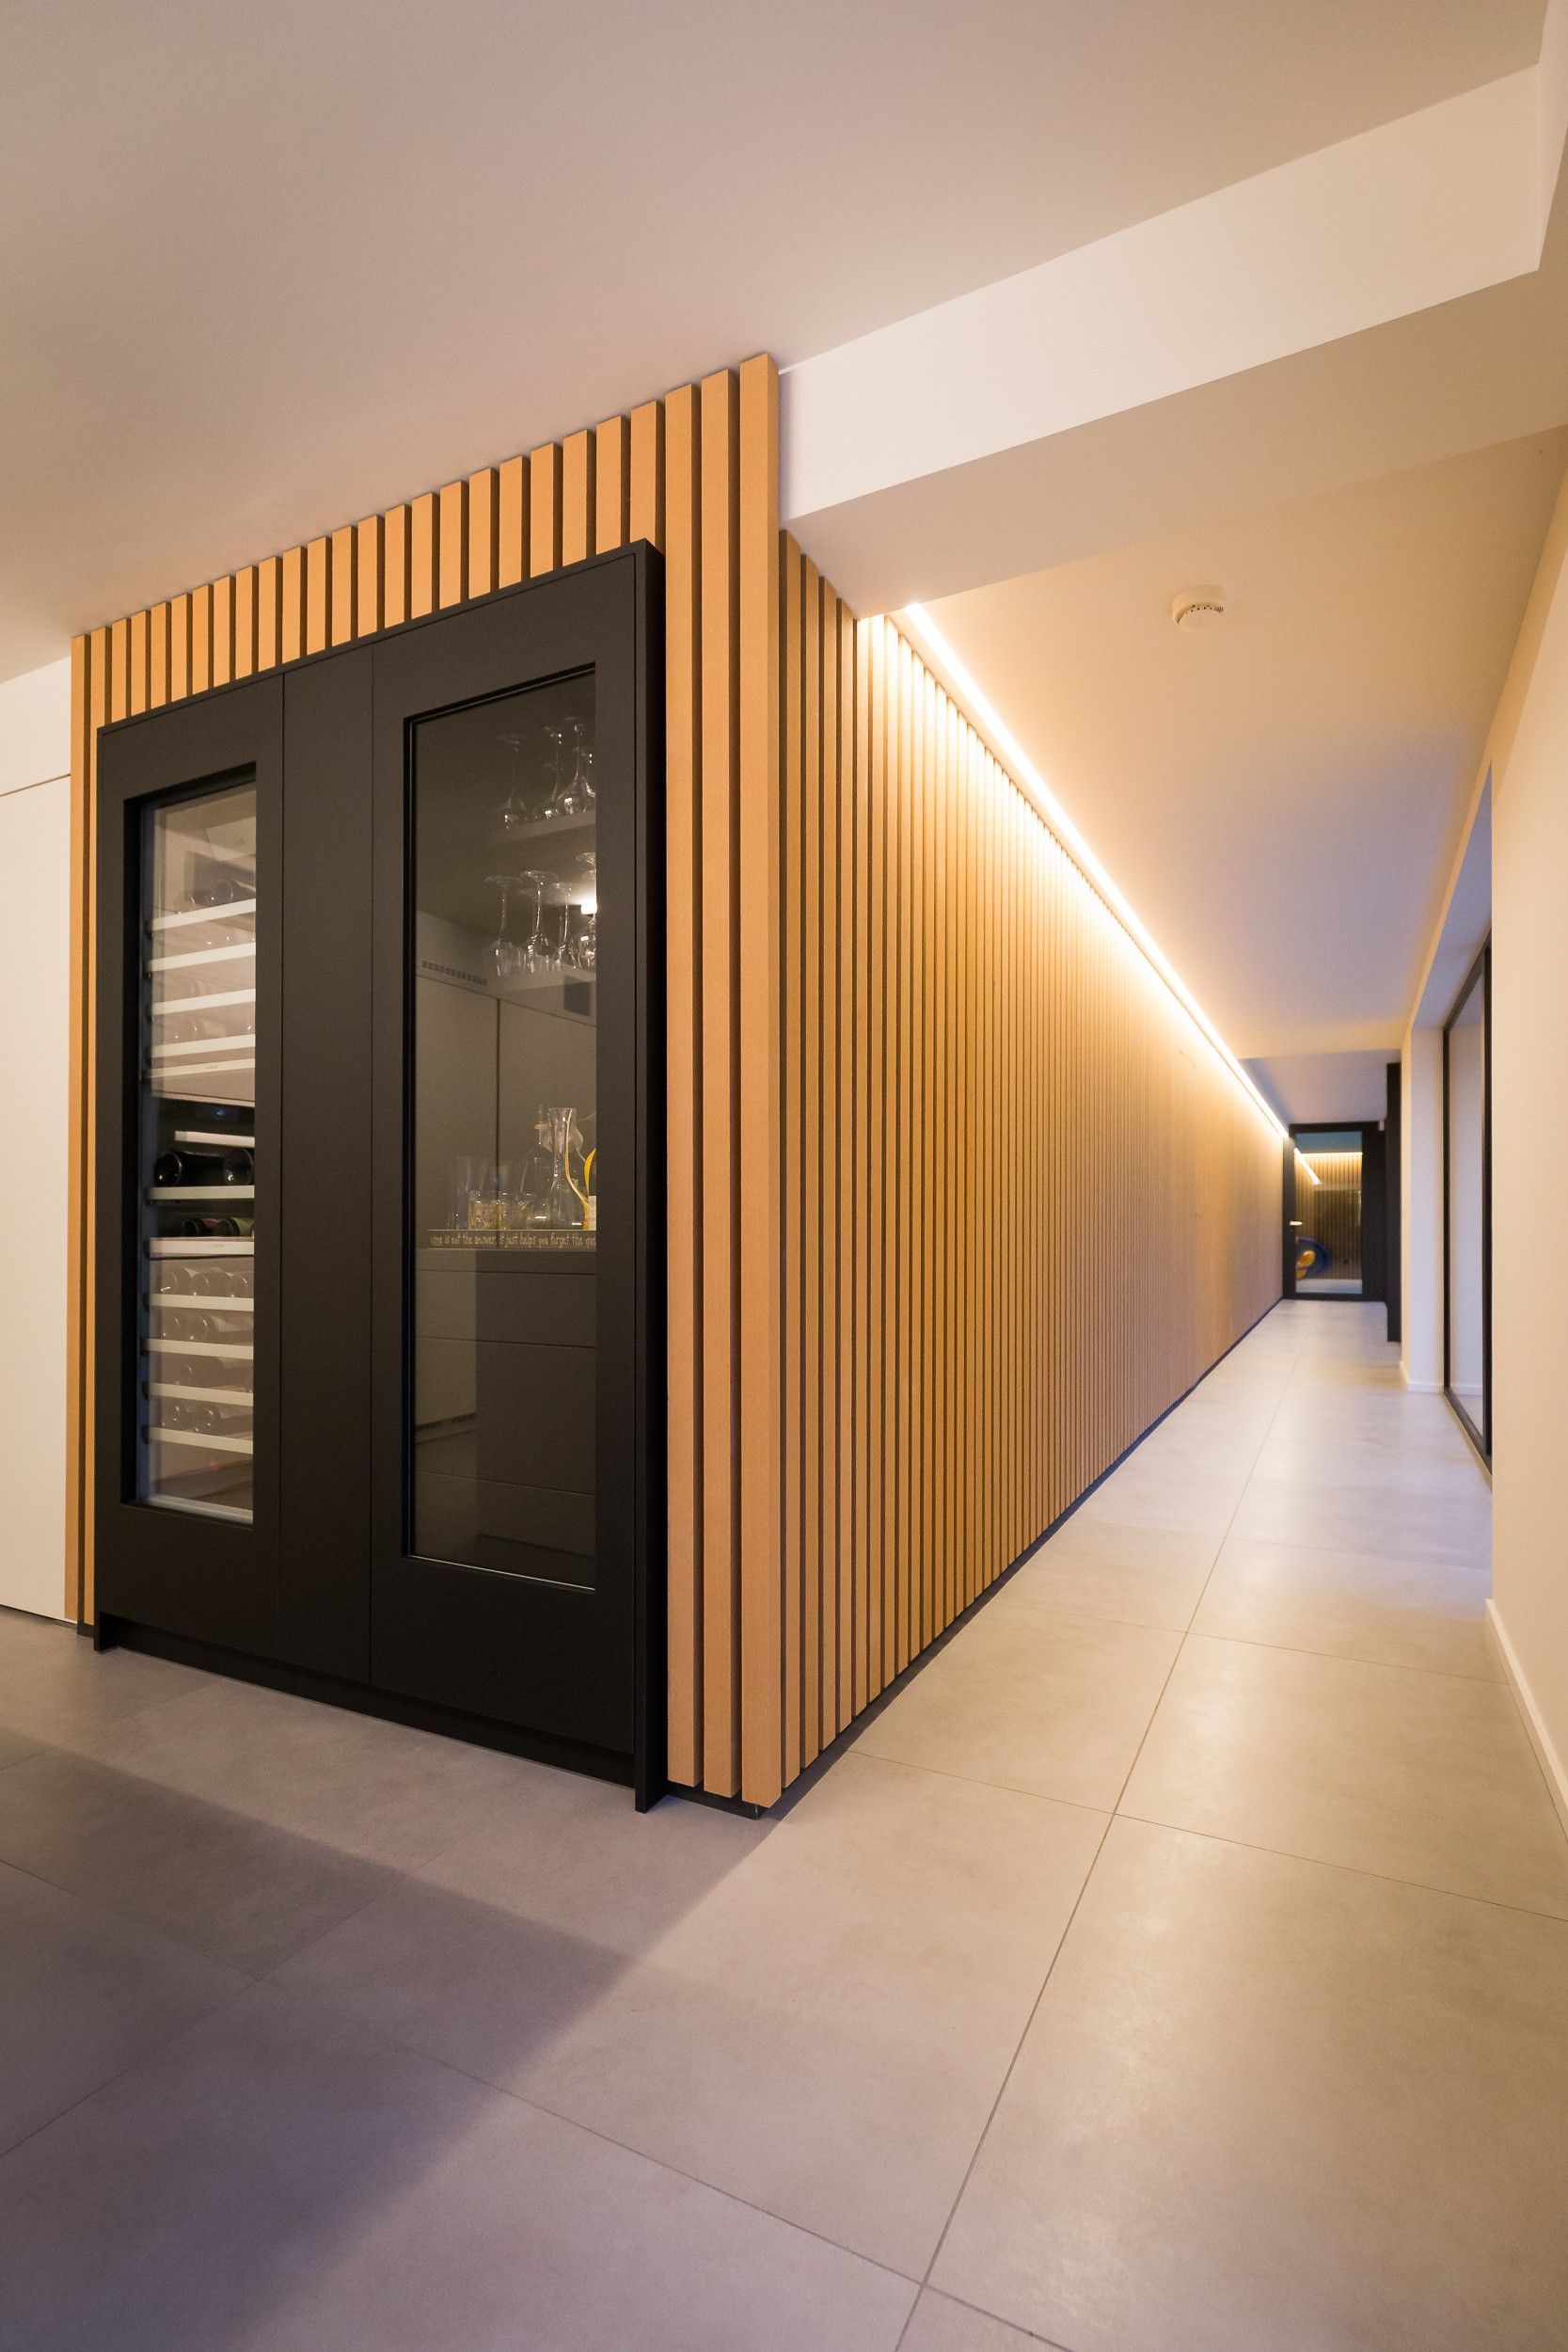 habillage facade simple about this project habillage de la faade with habillage facade. Black Bedroom Furniture Sets. Home Design Ideas